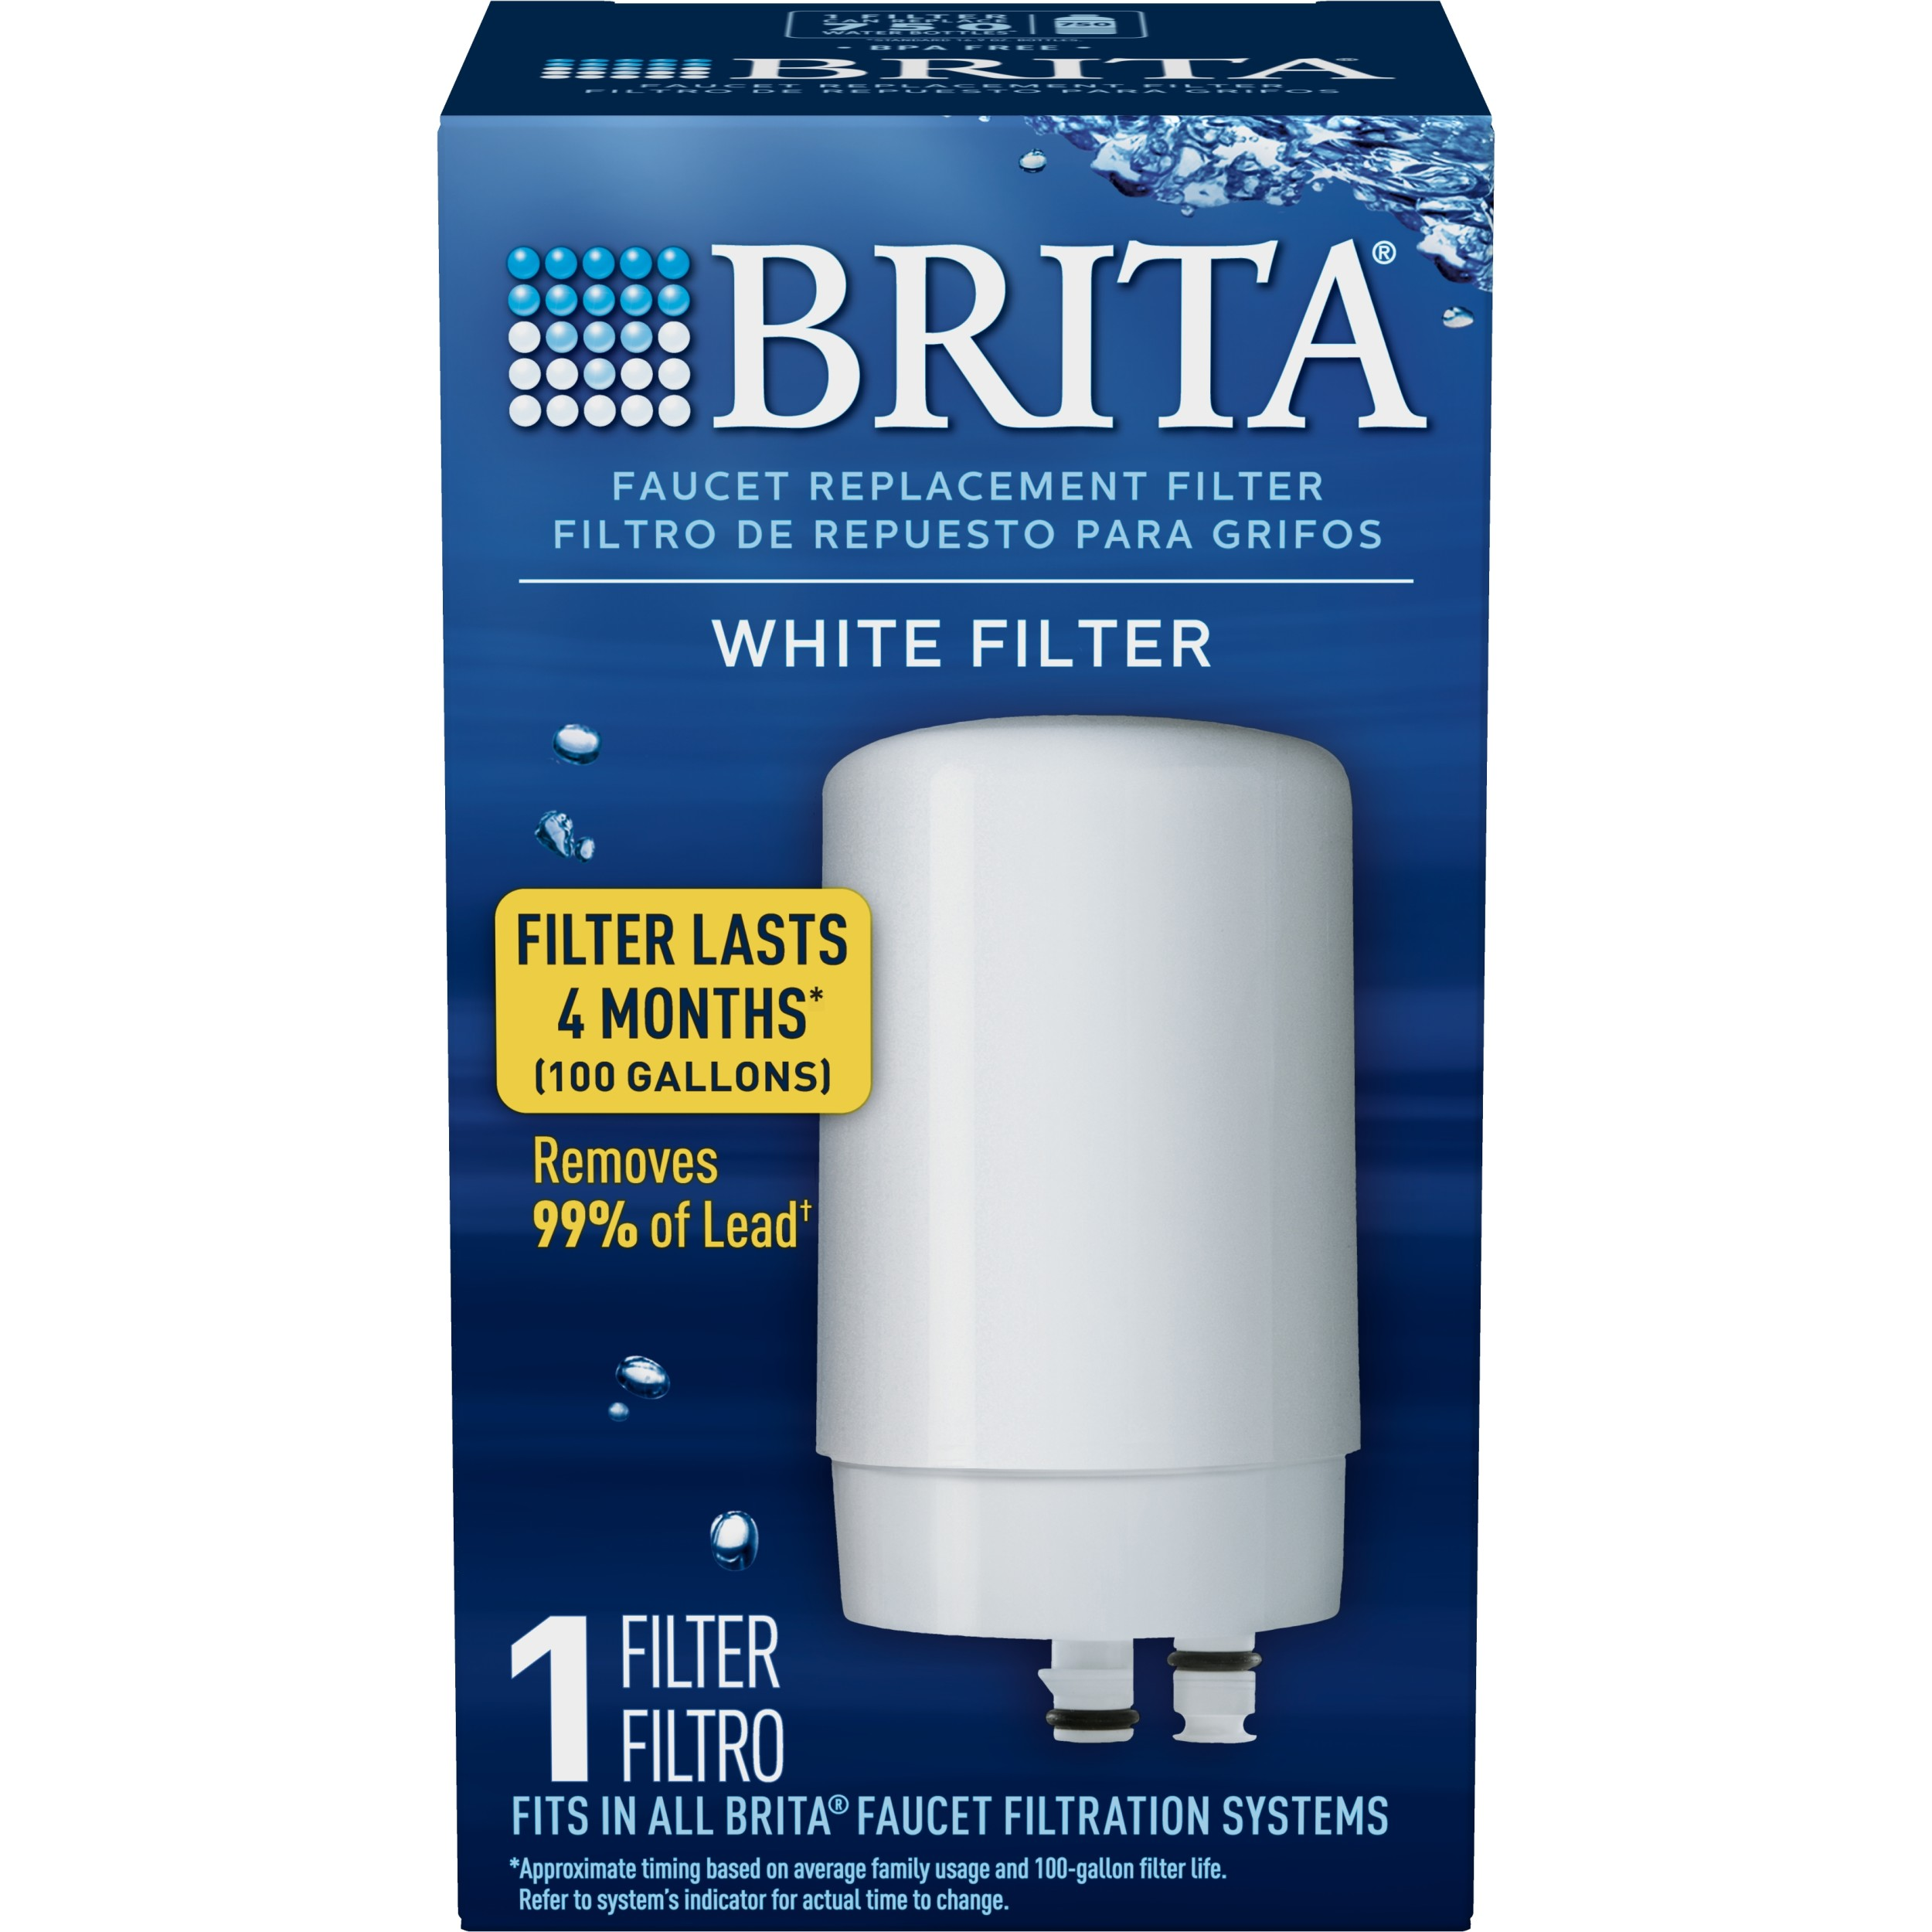 brita tap water faucet filter replacement 1 count white